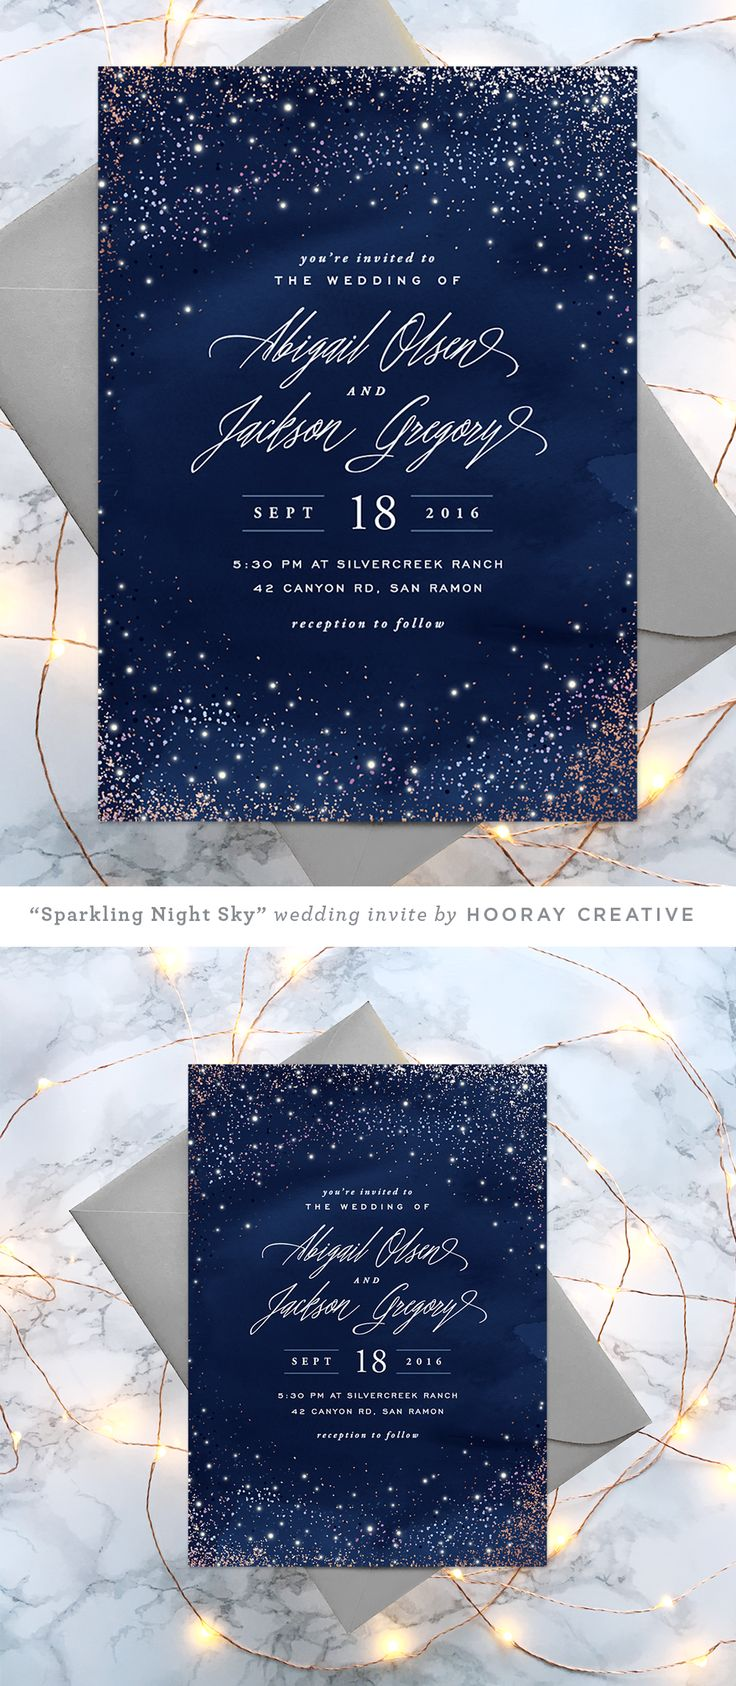 wedding invitation design wedding invitations design Sparkling Night Sky starry wedding invitation design and styling by Hooray Creative